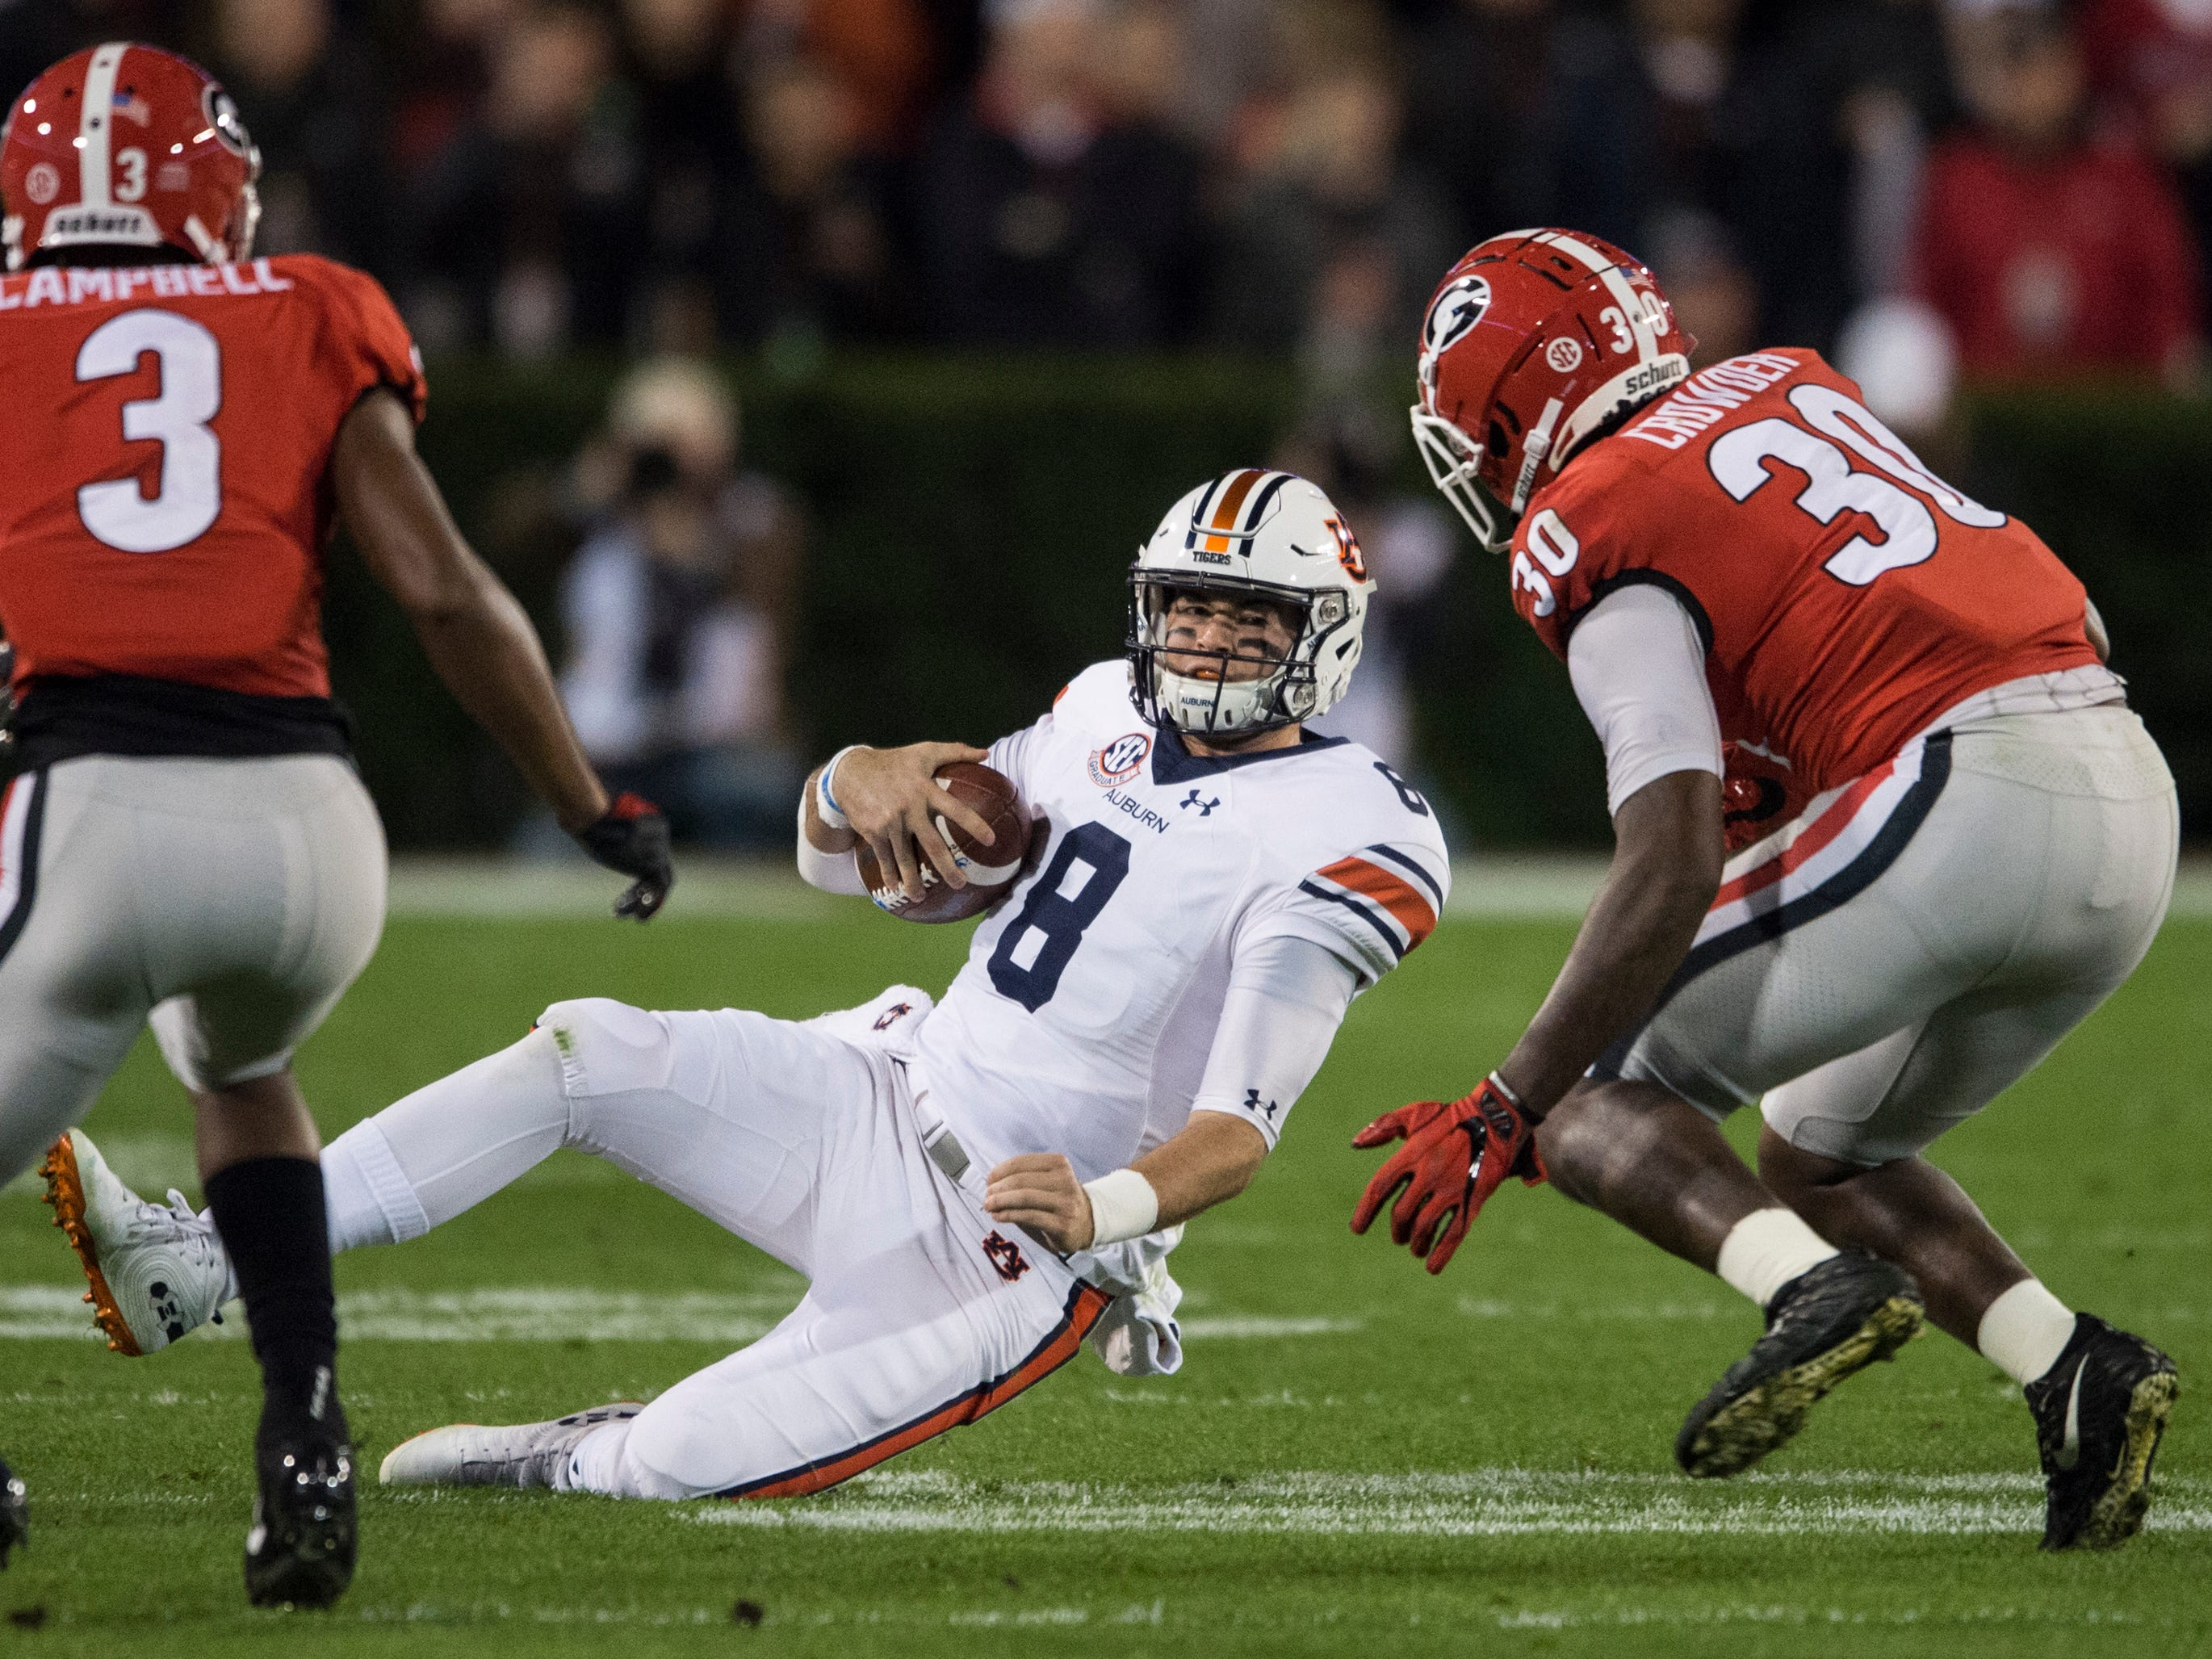 Auburn quarterback Jarrett Stidham (8) slides after a short run against Georgia  at Sanford Stadium in Athens, Ga., on Saturday, Nov. 10, 2018. Georgia leads Auburn 20-10 at halftime.